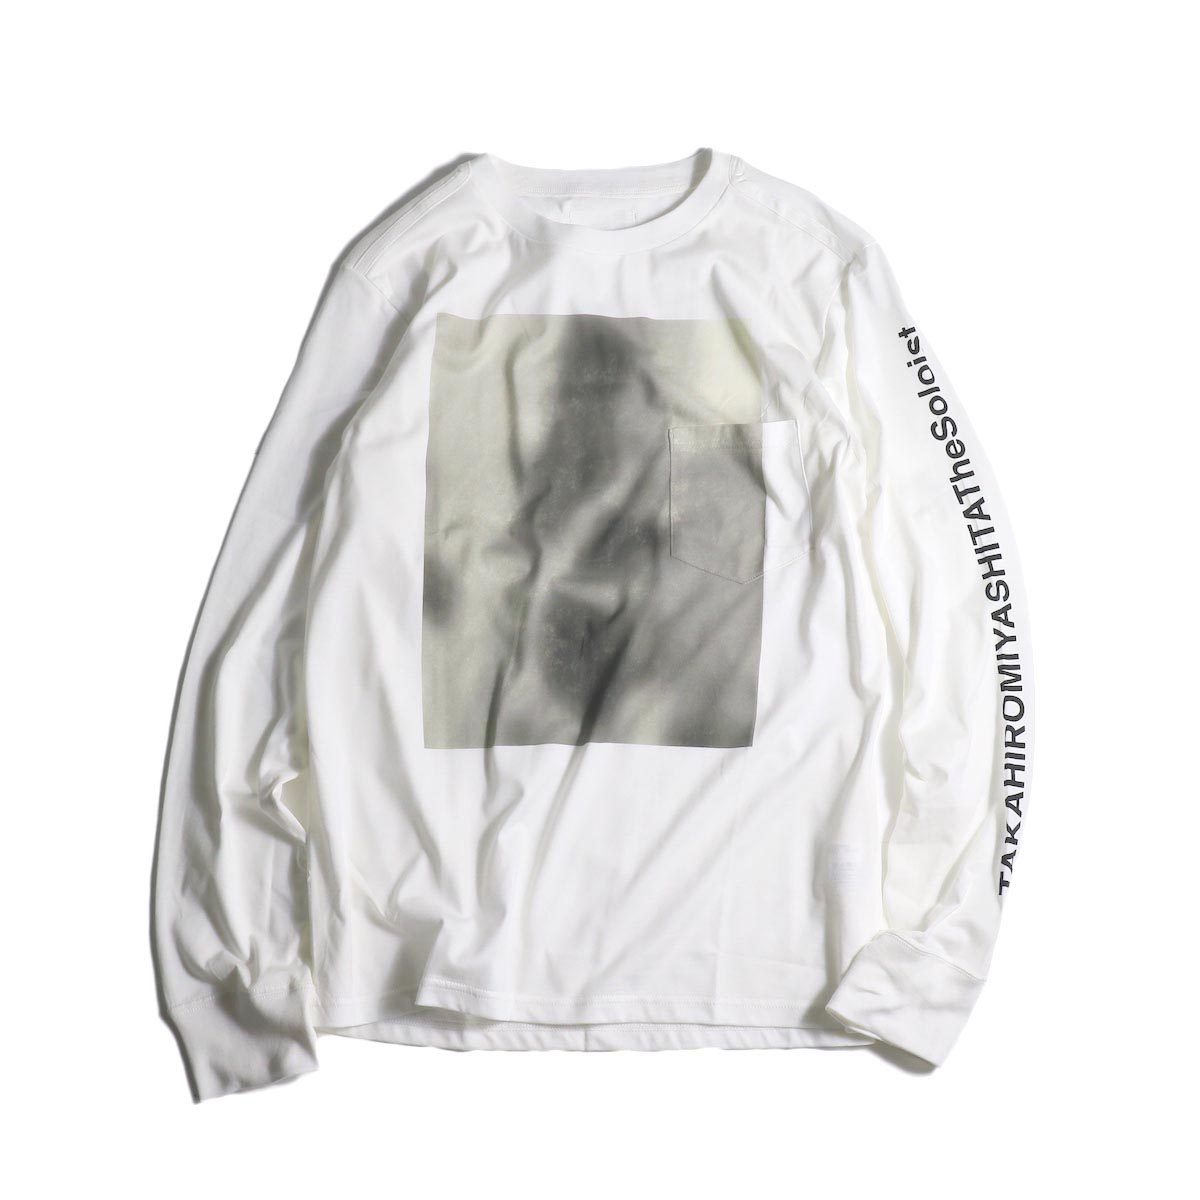 The Soloist / sc.0062AW20 untitled (woman)